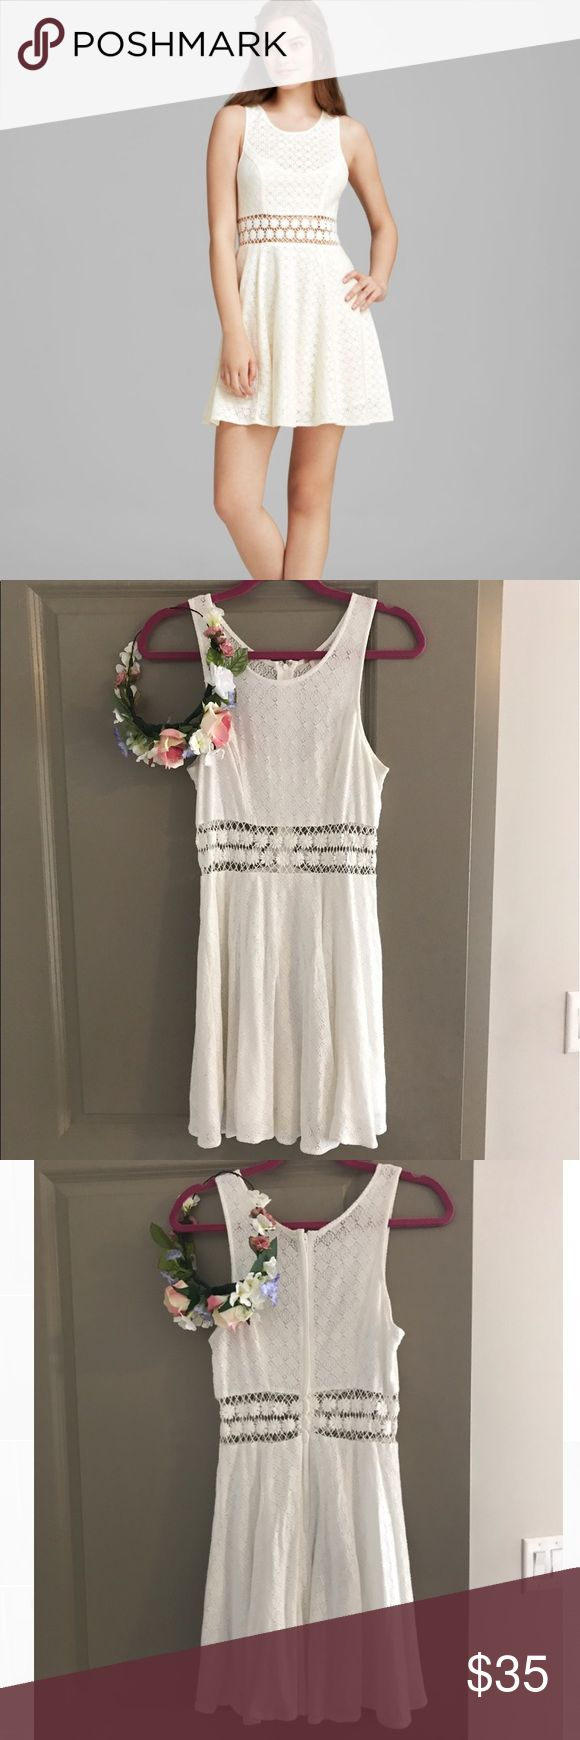 Free People White Dress with Cutouts Super cute Free People white dress with flower cutouts! Size 6. Great for the summer! Free People Dresses